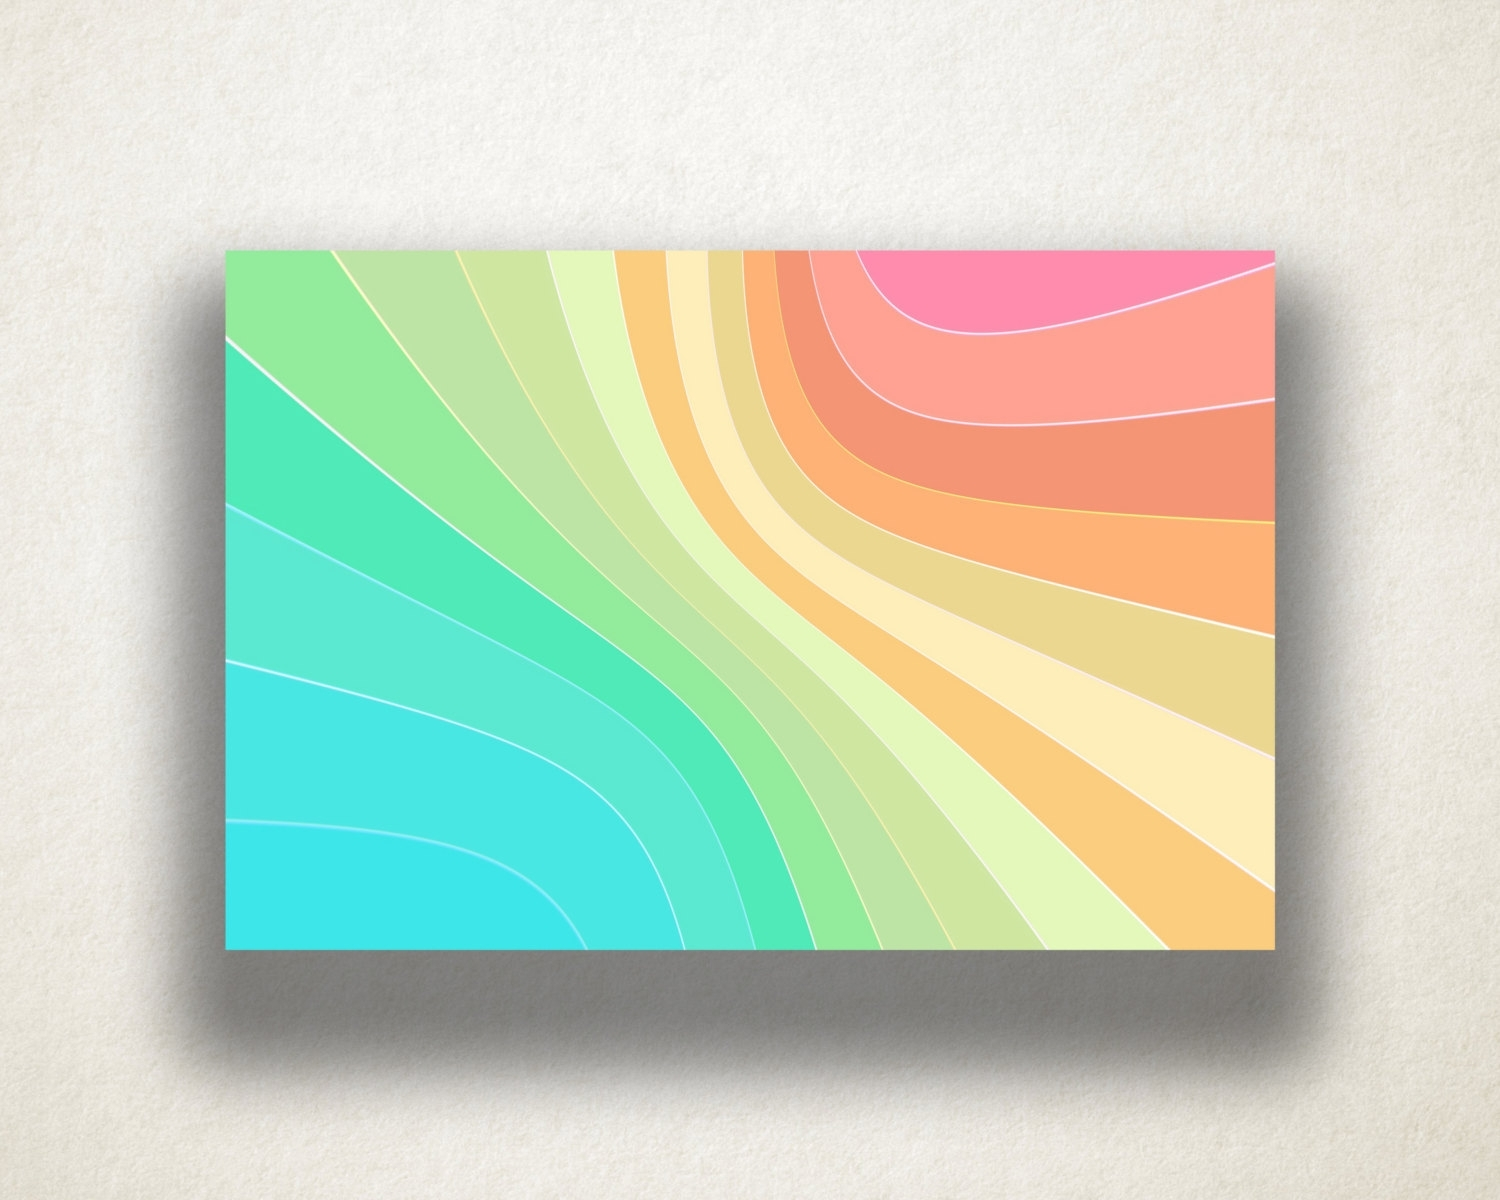 Abstract Rainbow Design Canvas Art Print, Gradient Pastel Wall Art Within Recent Pastel Abstract Wall Art (View 5 of 20)